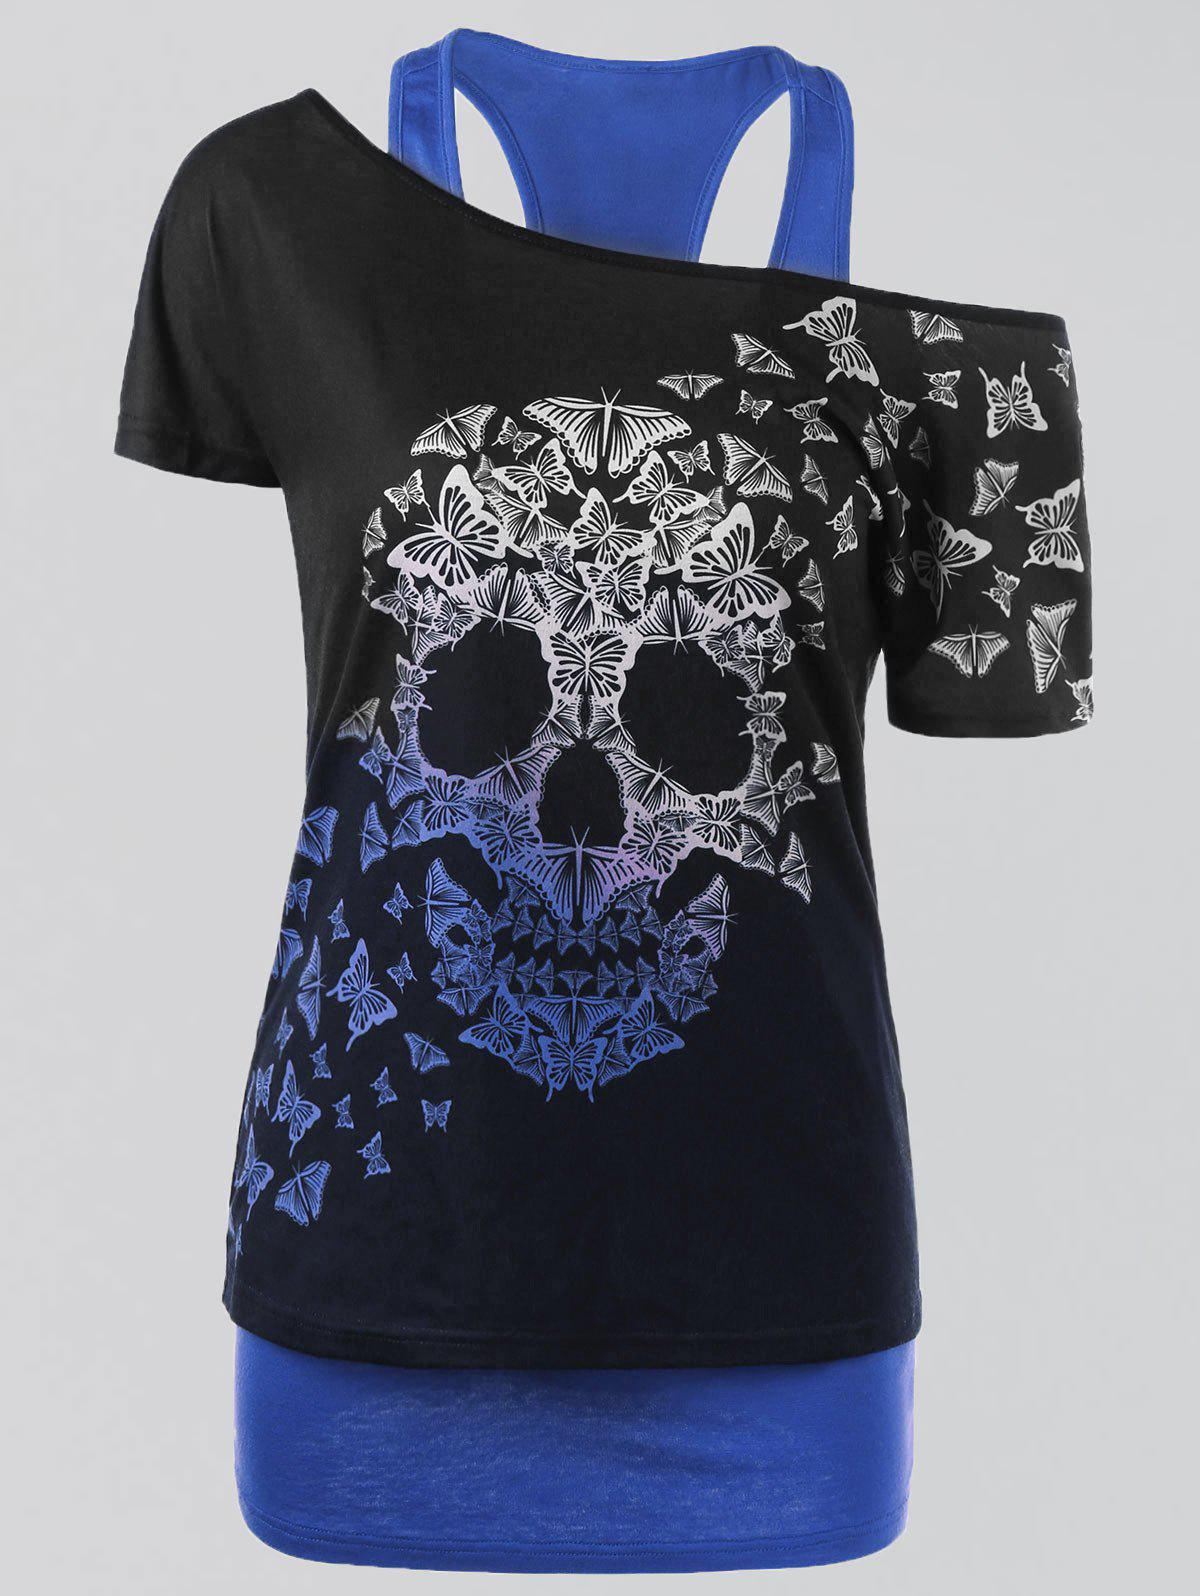 Plus Size Butterfly Skull T-shirt with Tank Top skull print plus size ruched tank top